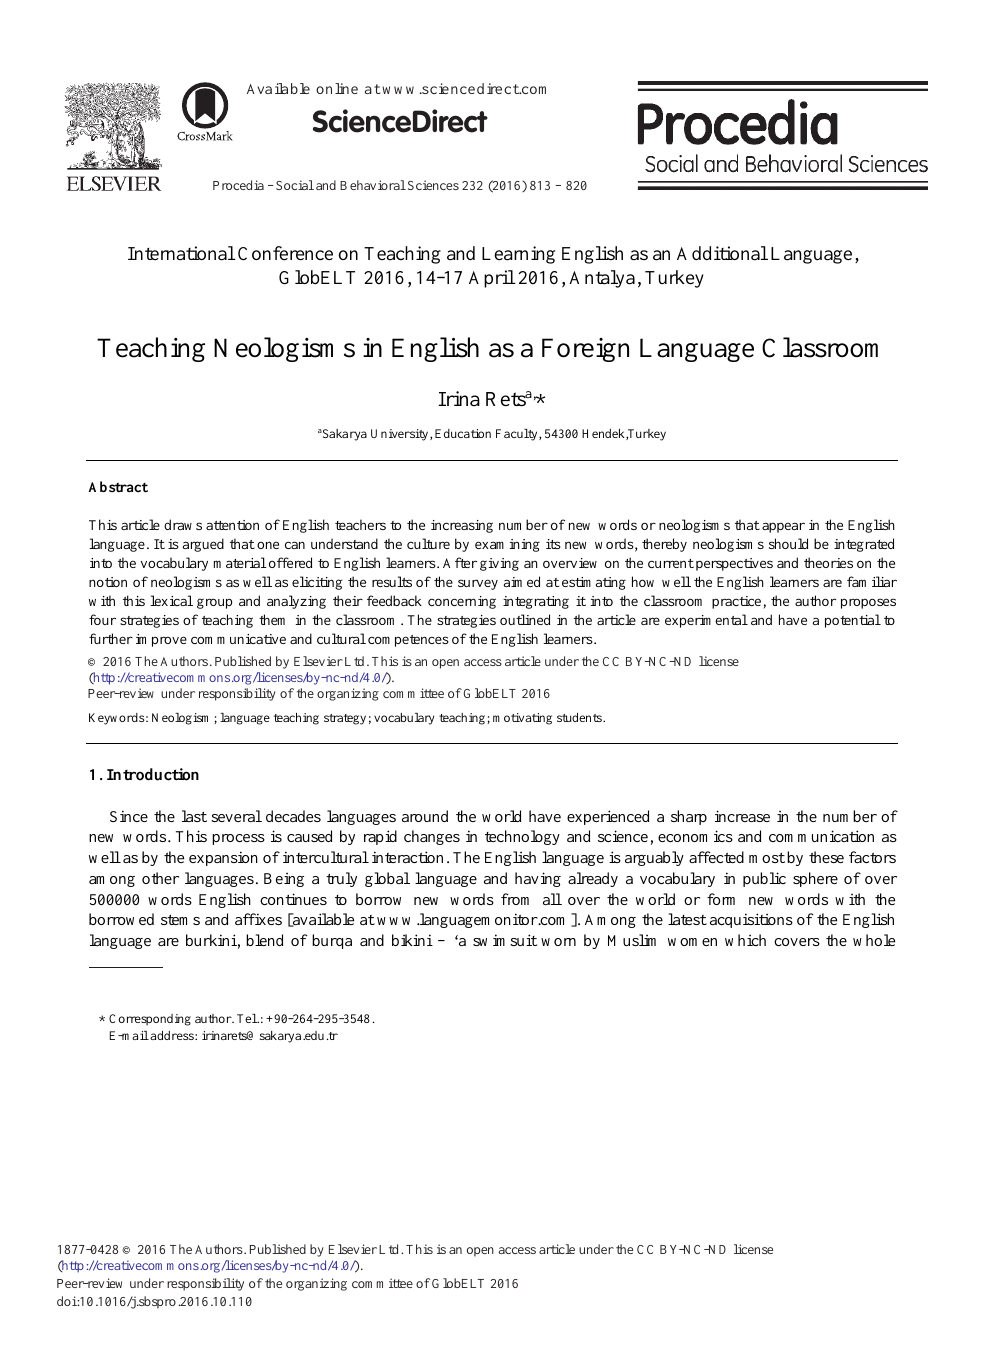 Teaching Neologisms in English as a Foreign Language